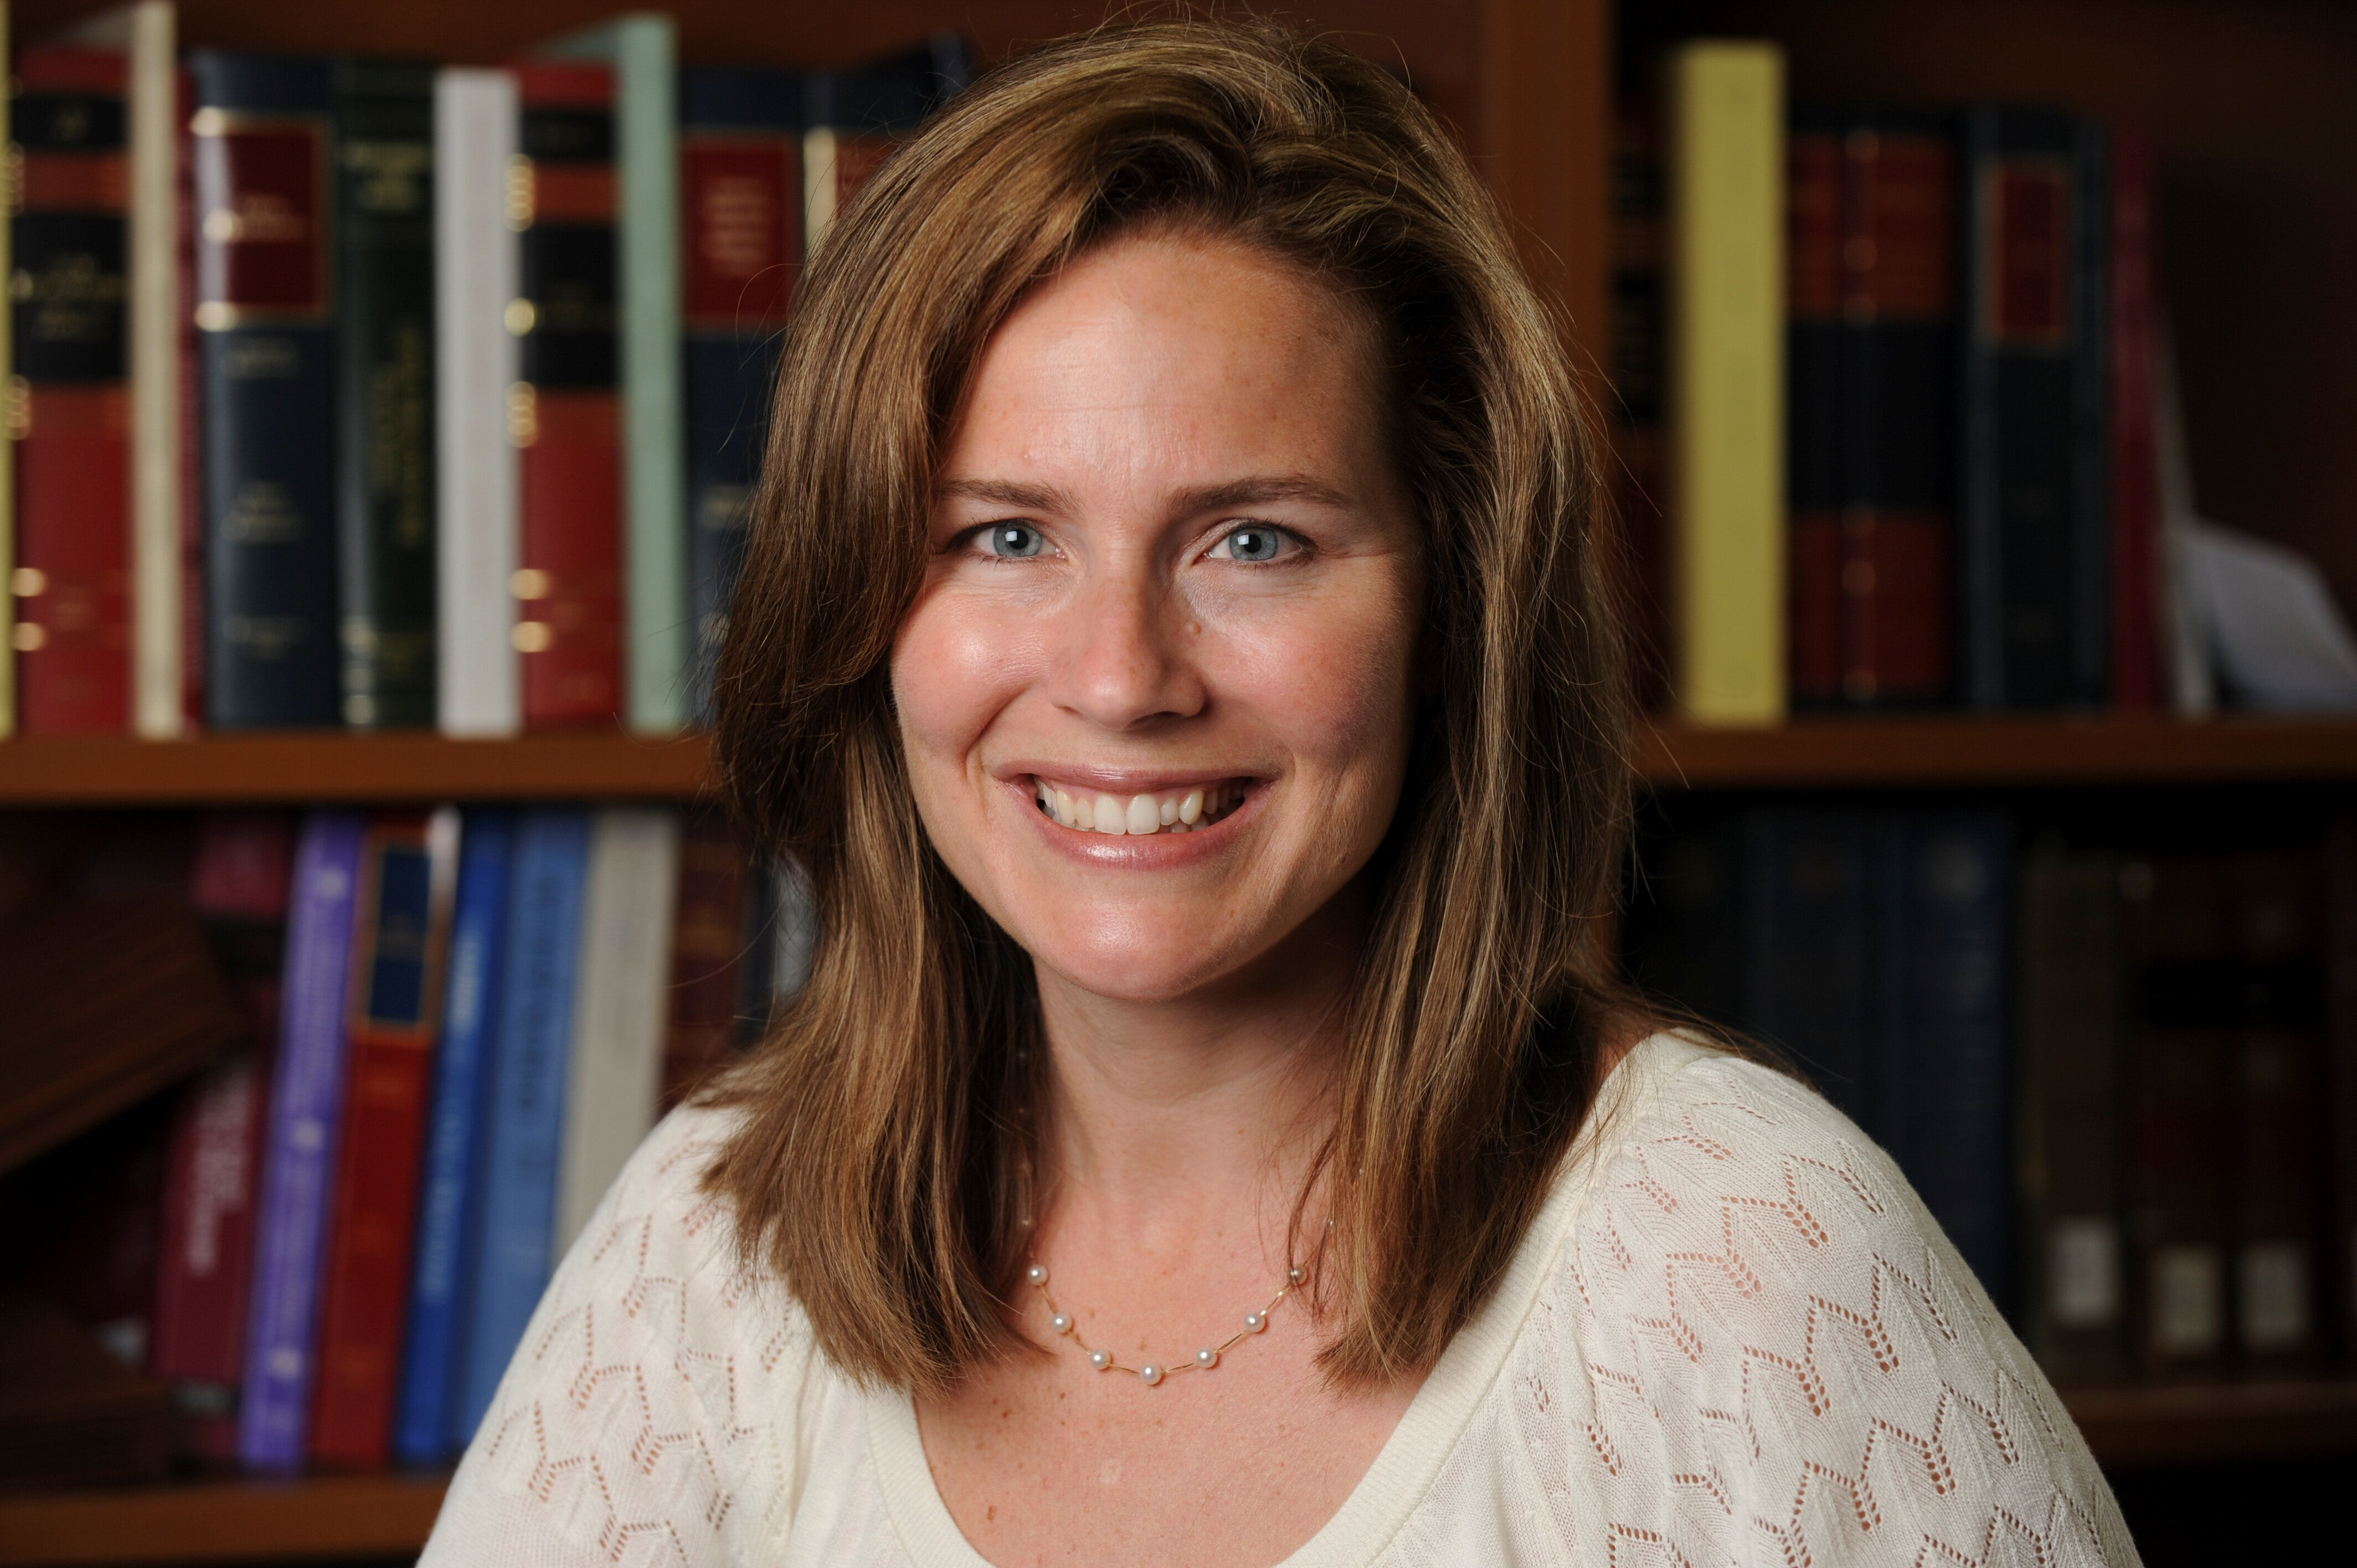 President Donald Trump is expected to nominate Judge Amy Coney Barrett of the U.S. Court of Appeals for the 7th District to t